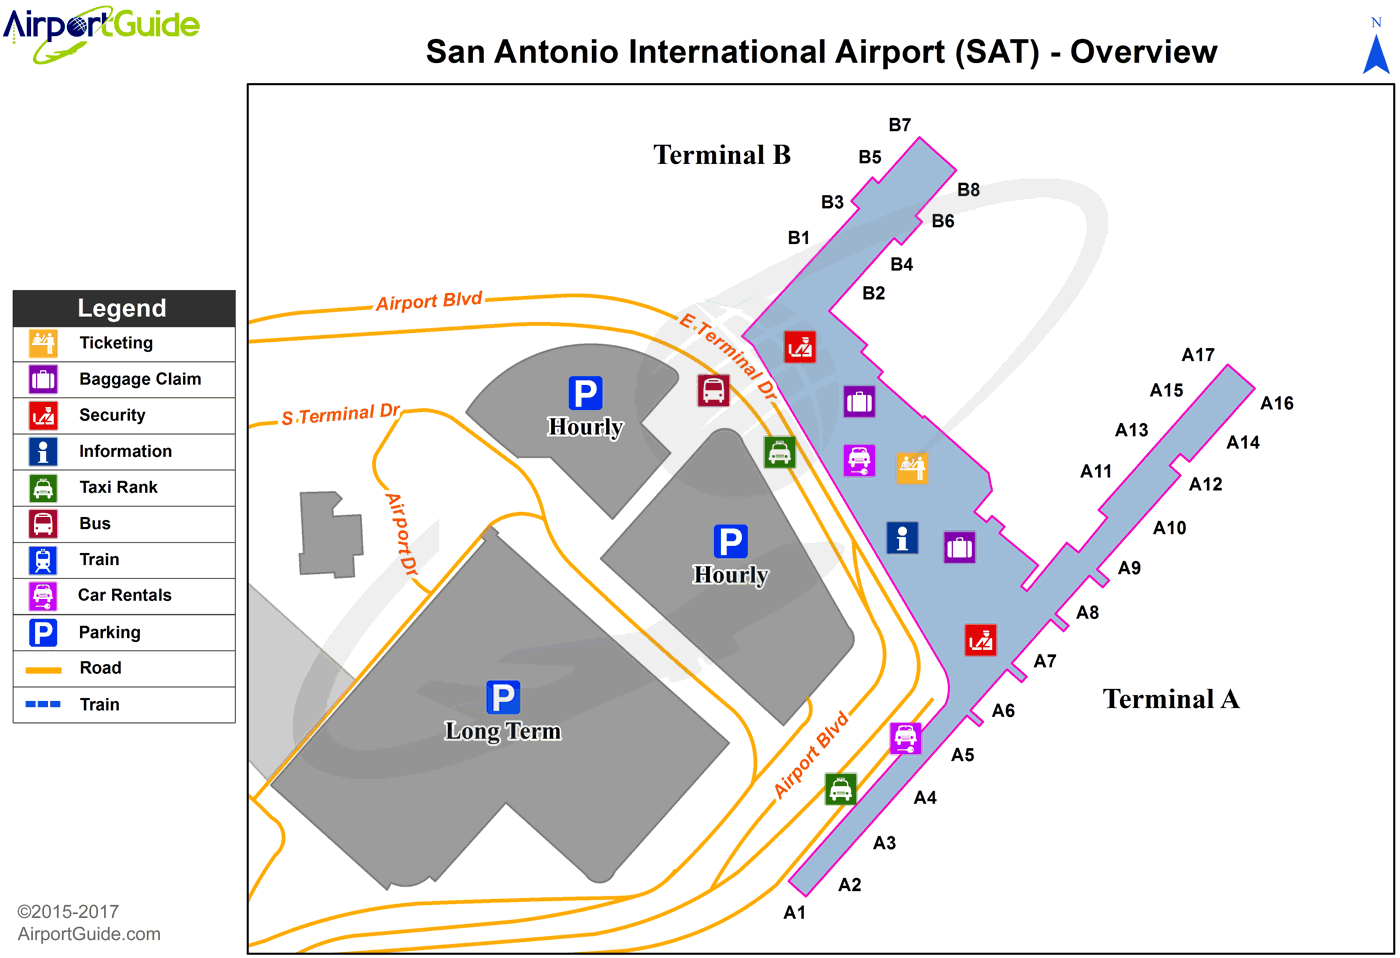 San Antonio - San Antonio International (SAT) Airport Terminal Map - Overview